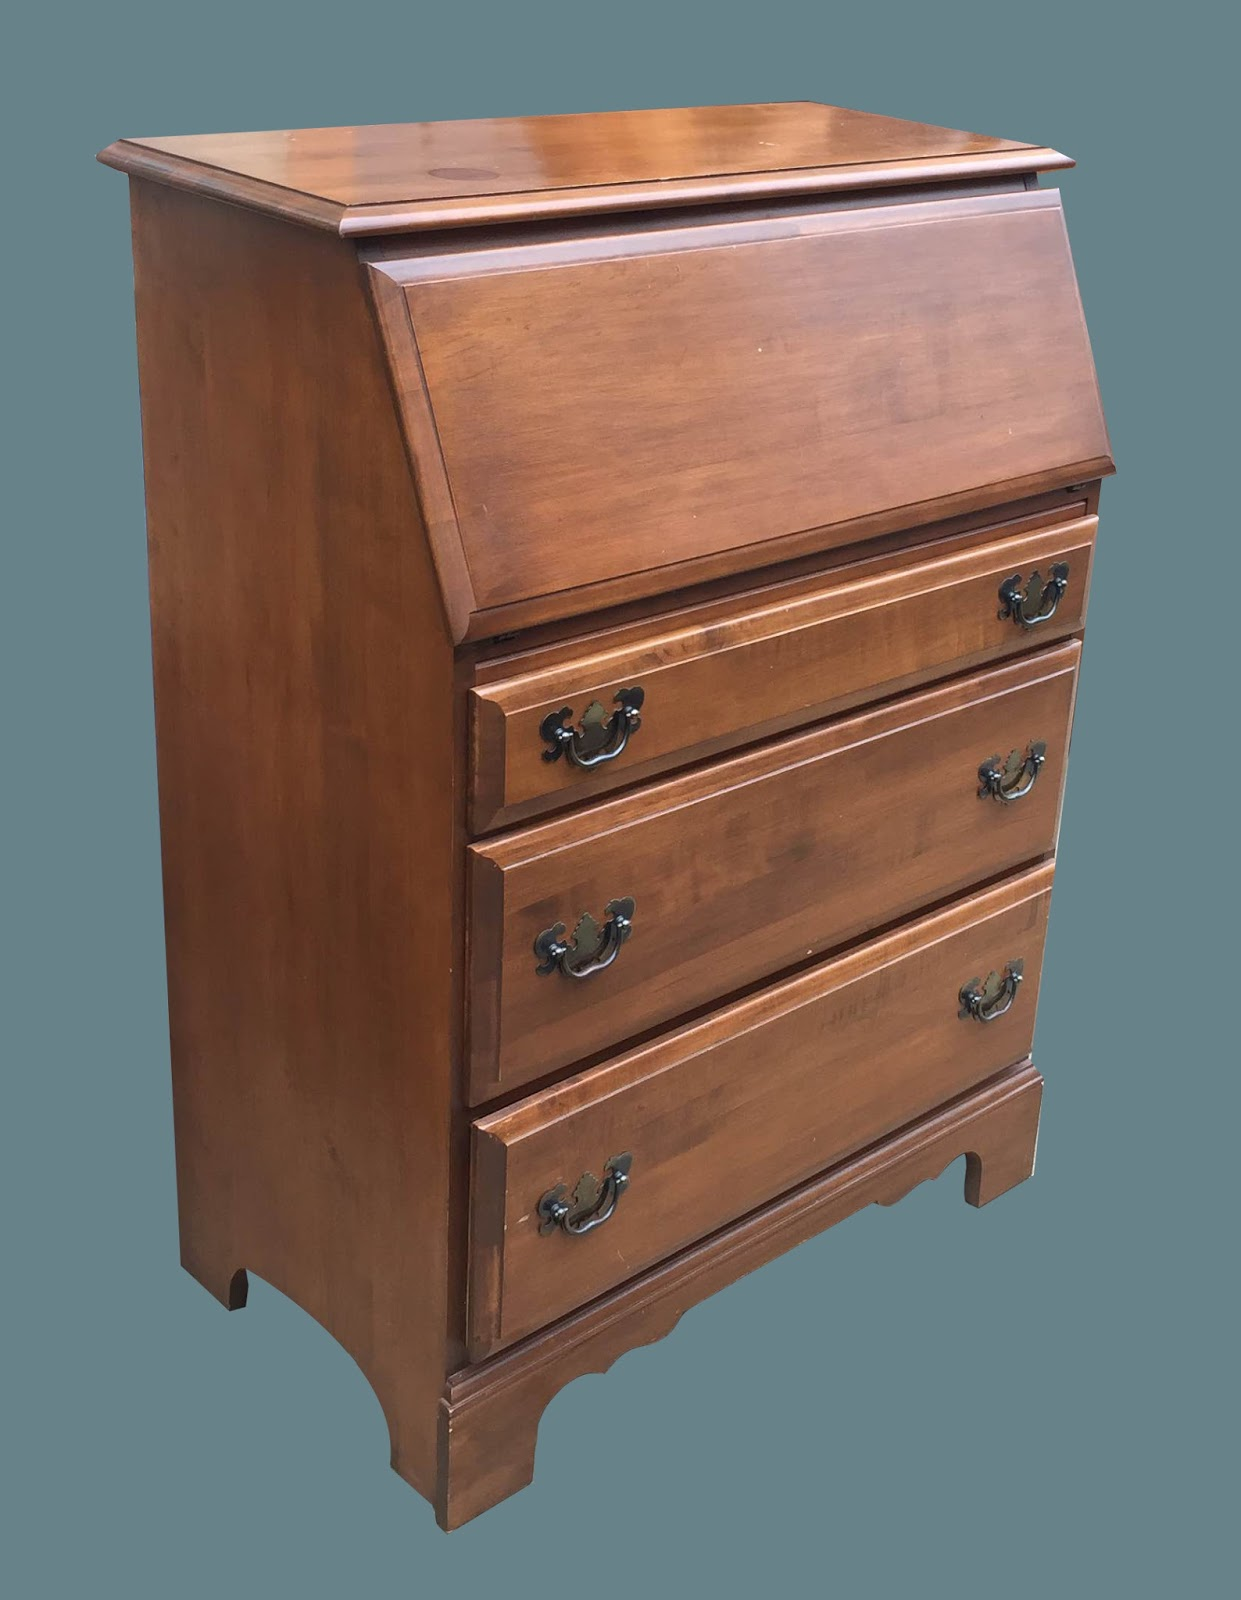 Uhuru Furniture & Collectibles: Vintage Medium Wood 3 ...